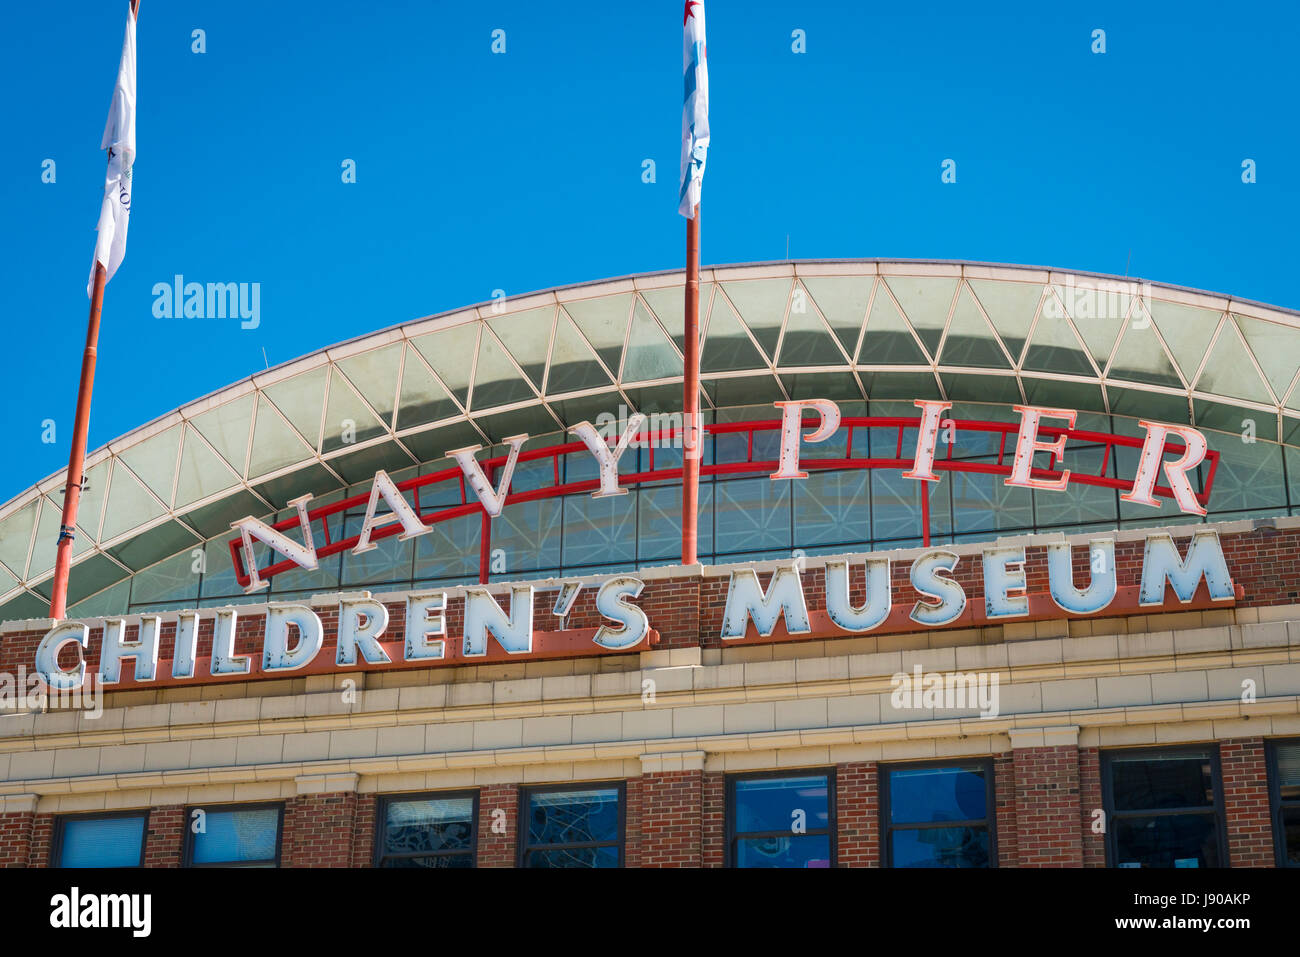 Chicago Illinois Near North Side E Grand Avenue Navy Pier Childrens Museum flags flag recreational cultural centre - Stock Image